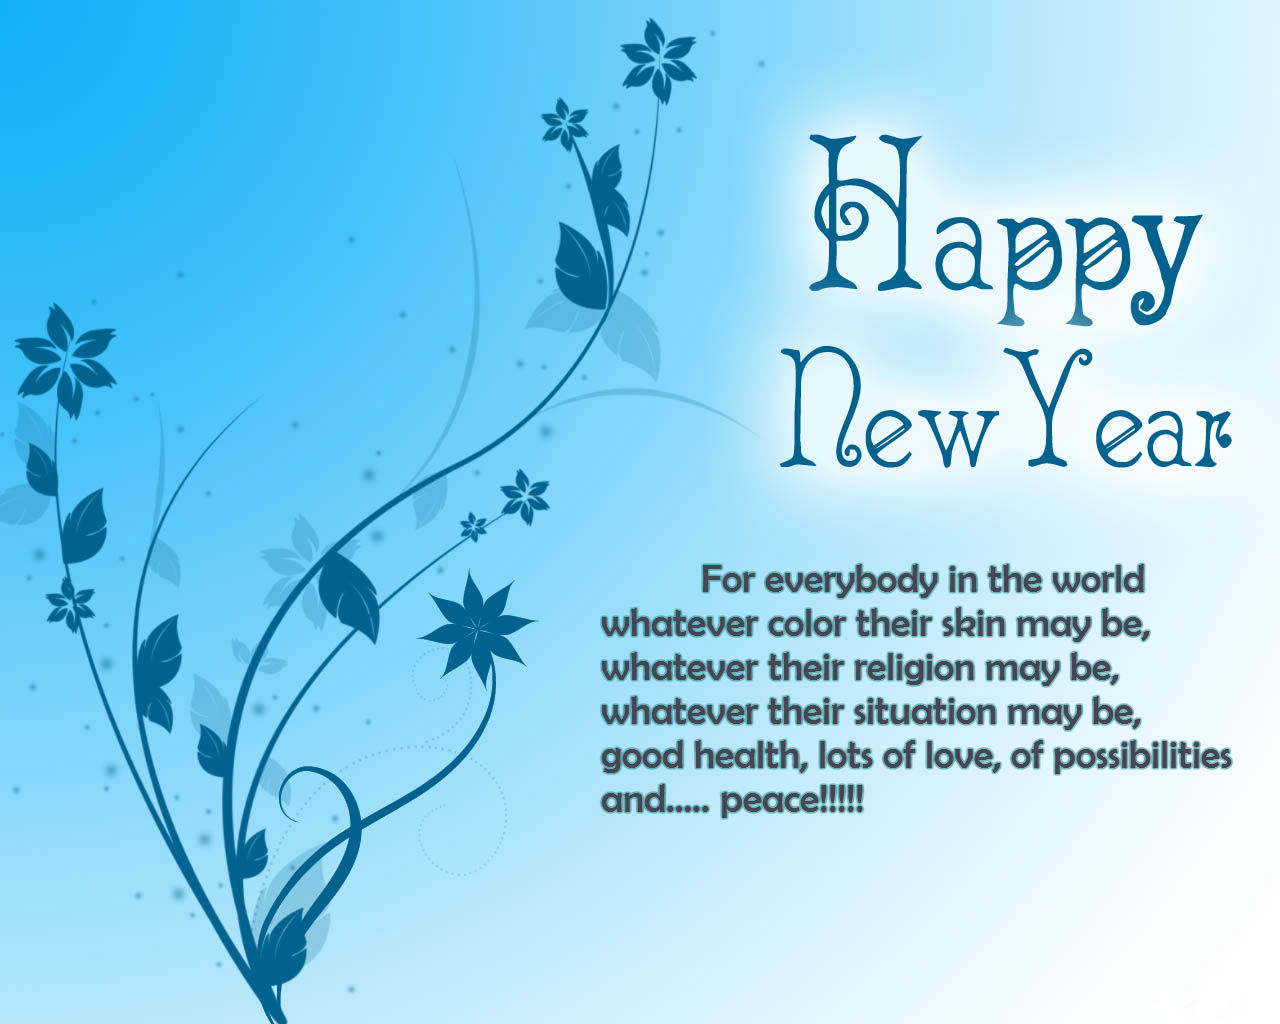 2013 New Year Wishes Wallpapers And Sms. 1280 x 1024.Funny Happy New Years E-cards